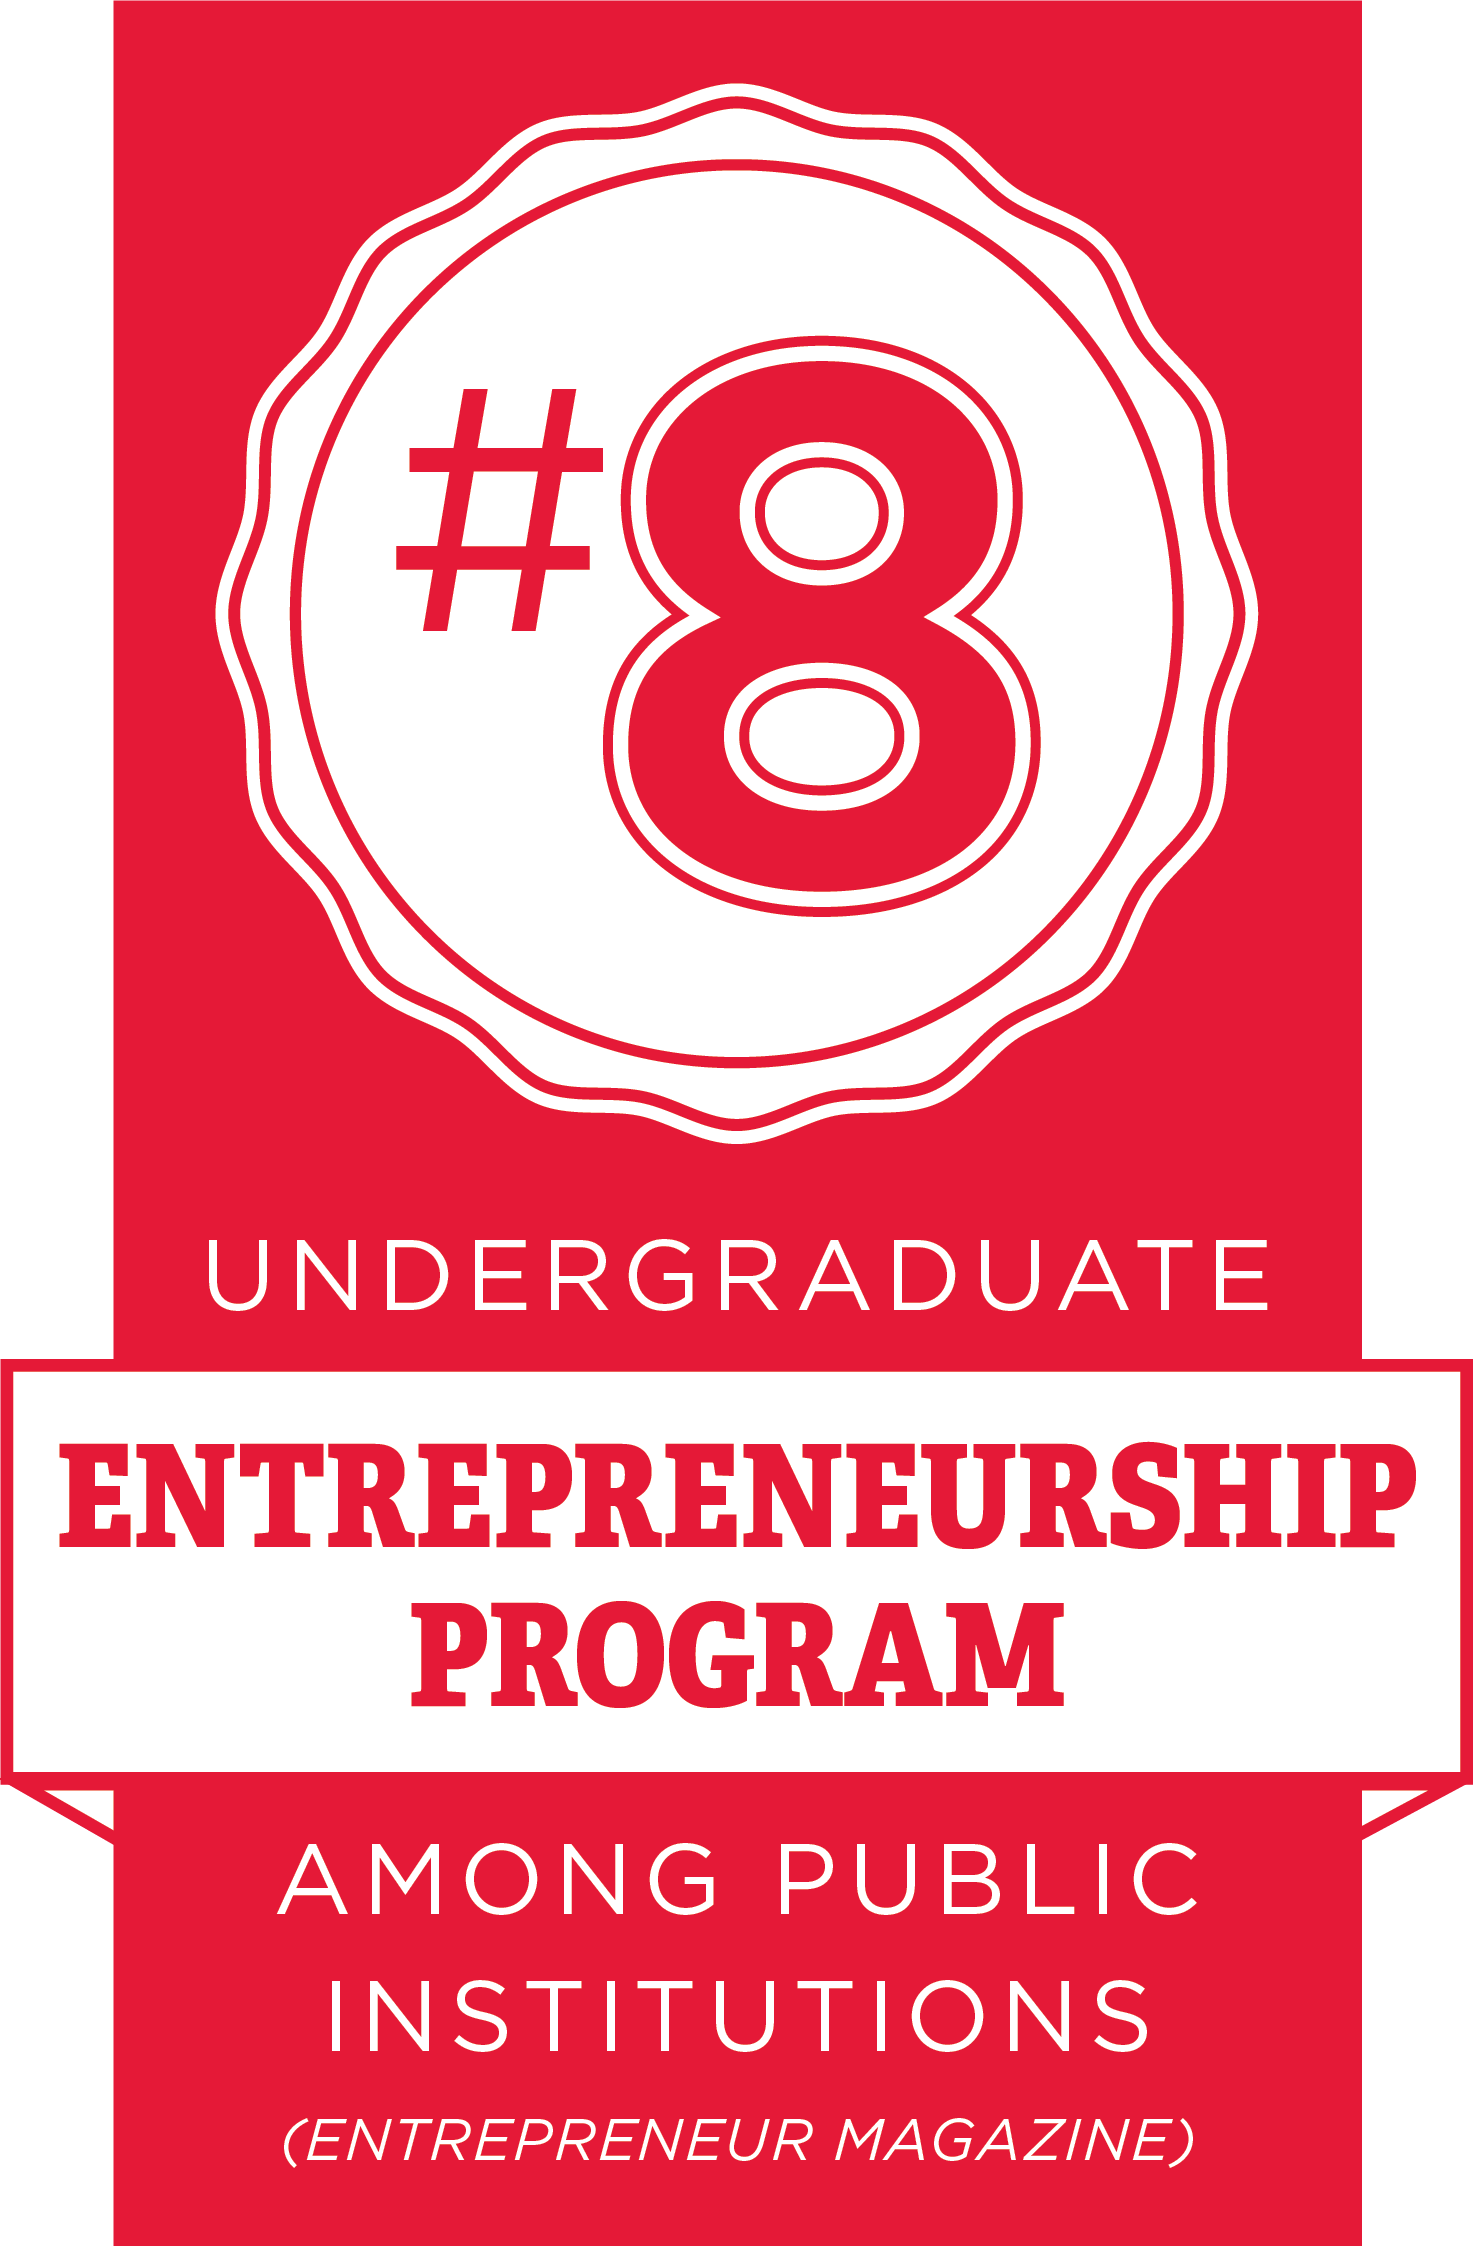 Miami among Entrepreneur magazine's top 25 undergraduate schools for entrepreneurship studies for 2017.